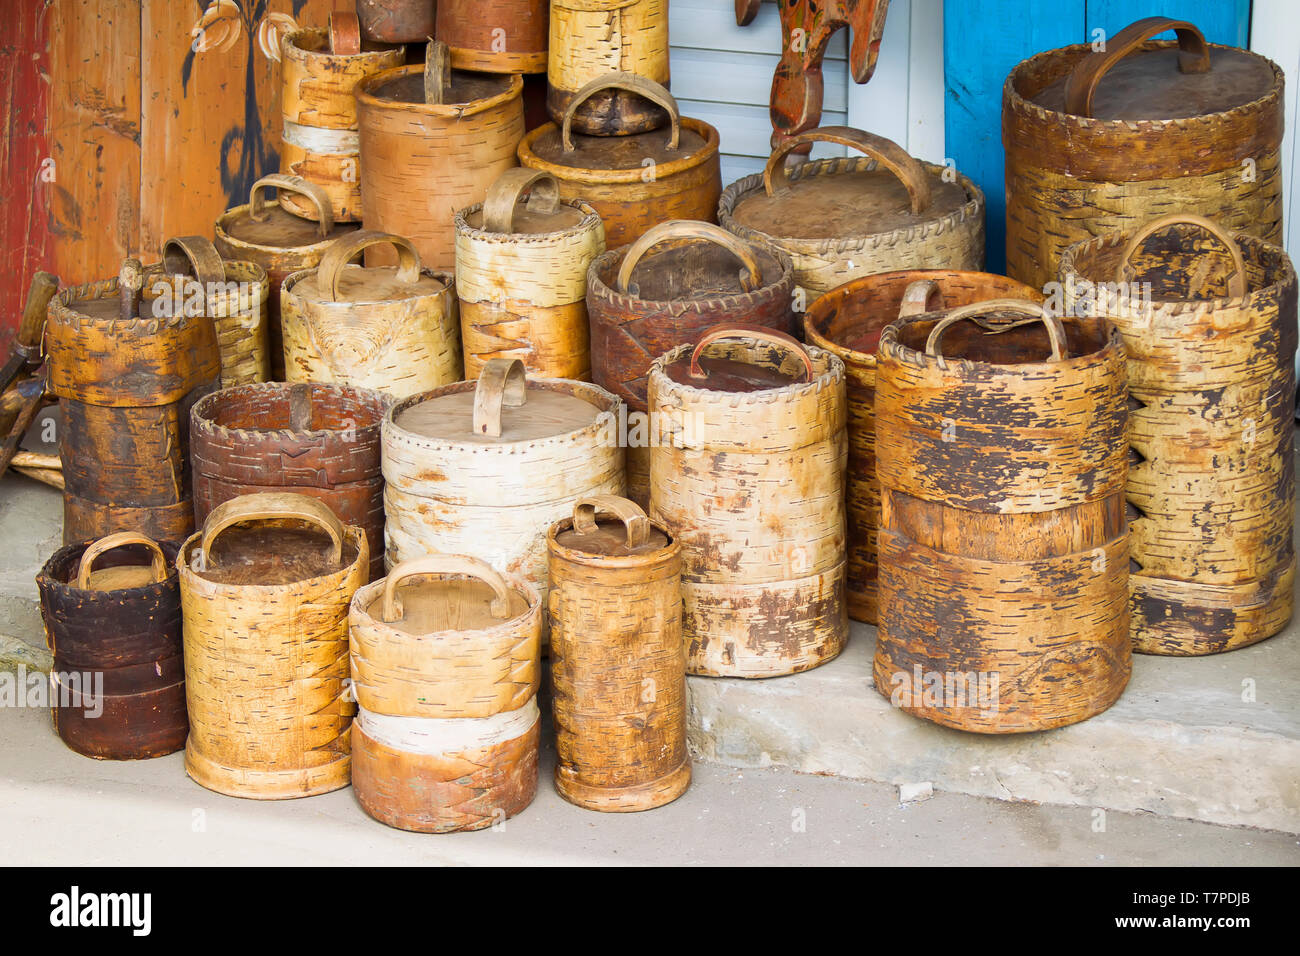 Ancient ancient birch baskets. Products from birch bark - Stock Image